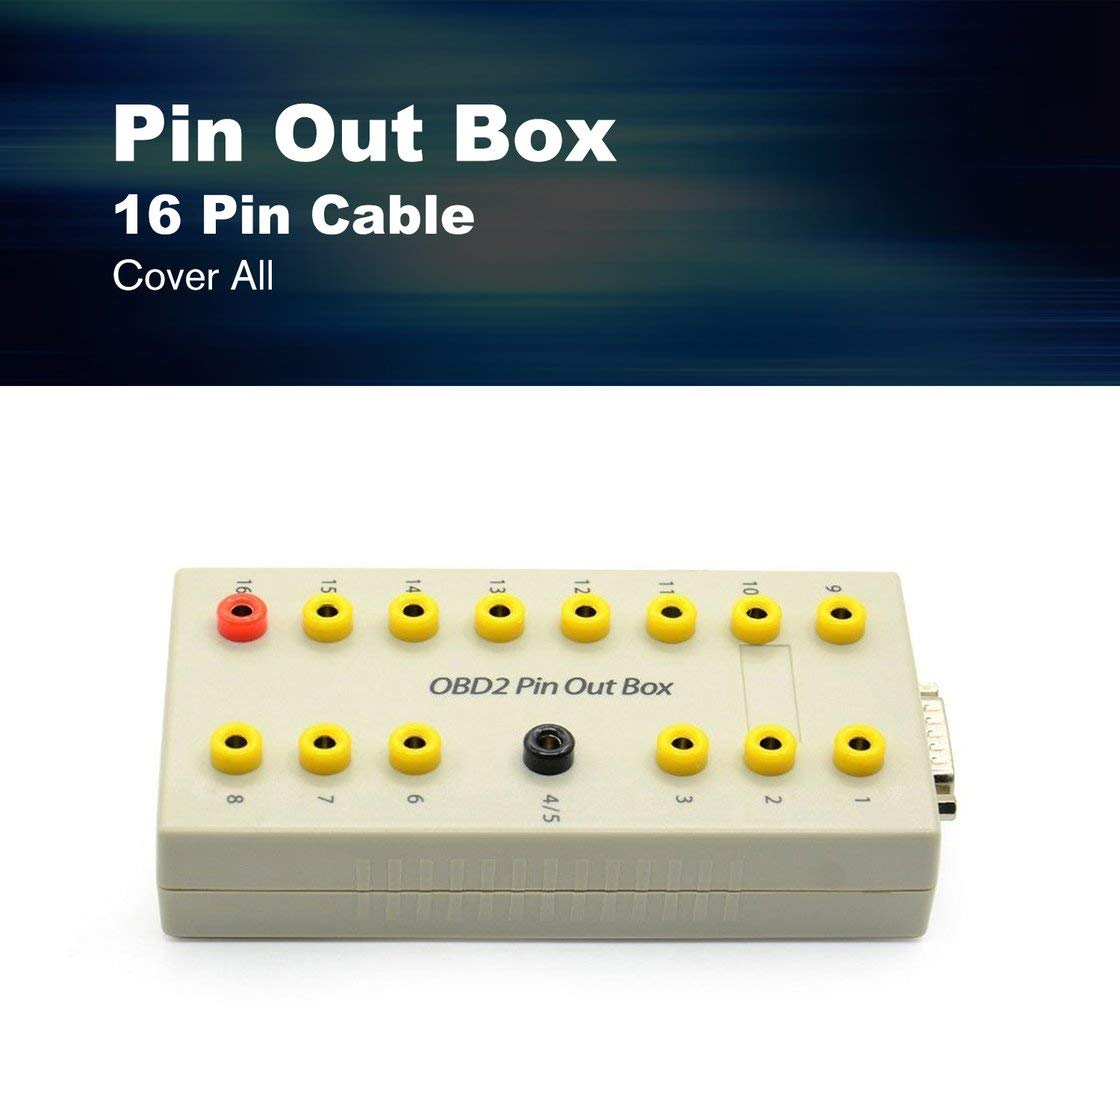 OBD2 Pin Out Box Breakout Tester Conector Auto diagnóstico Pinout Protocolo Protocolo Detector Auto Can Test Box 16 Pin Cable: Amazon.es: Bricolaje y ...